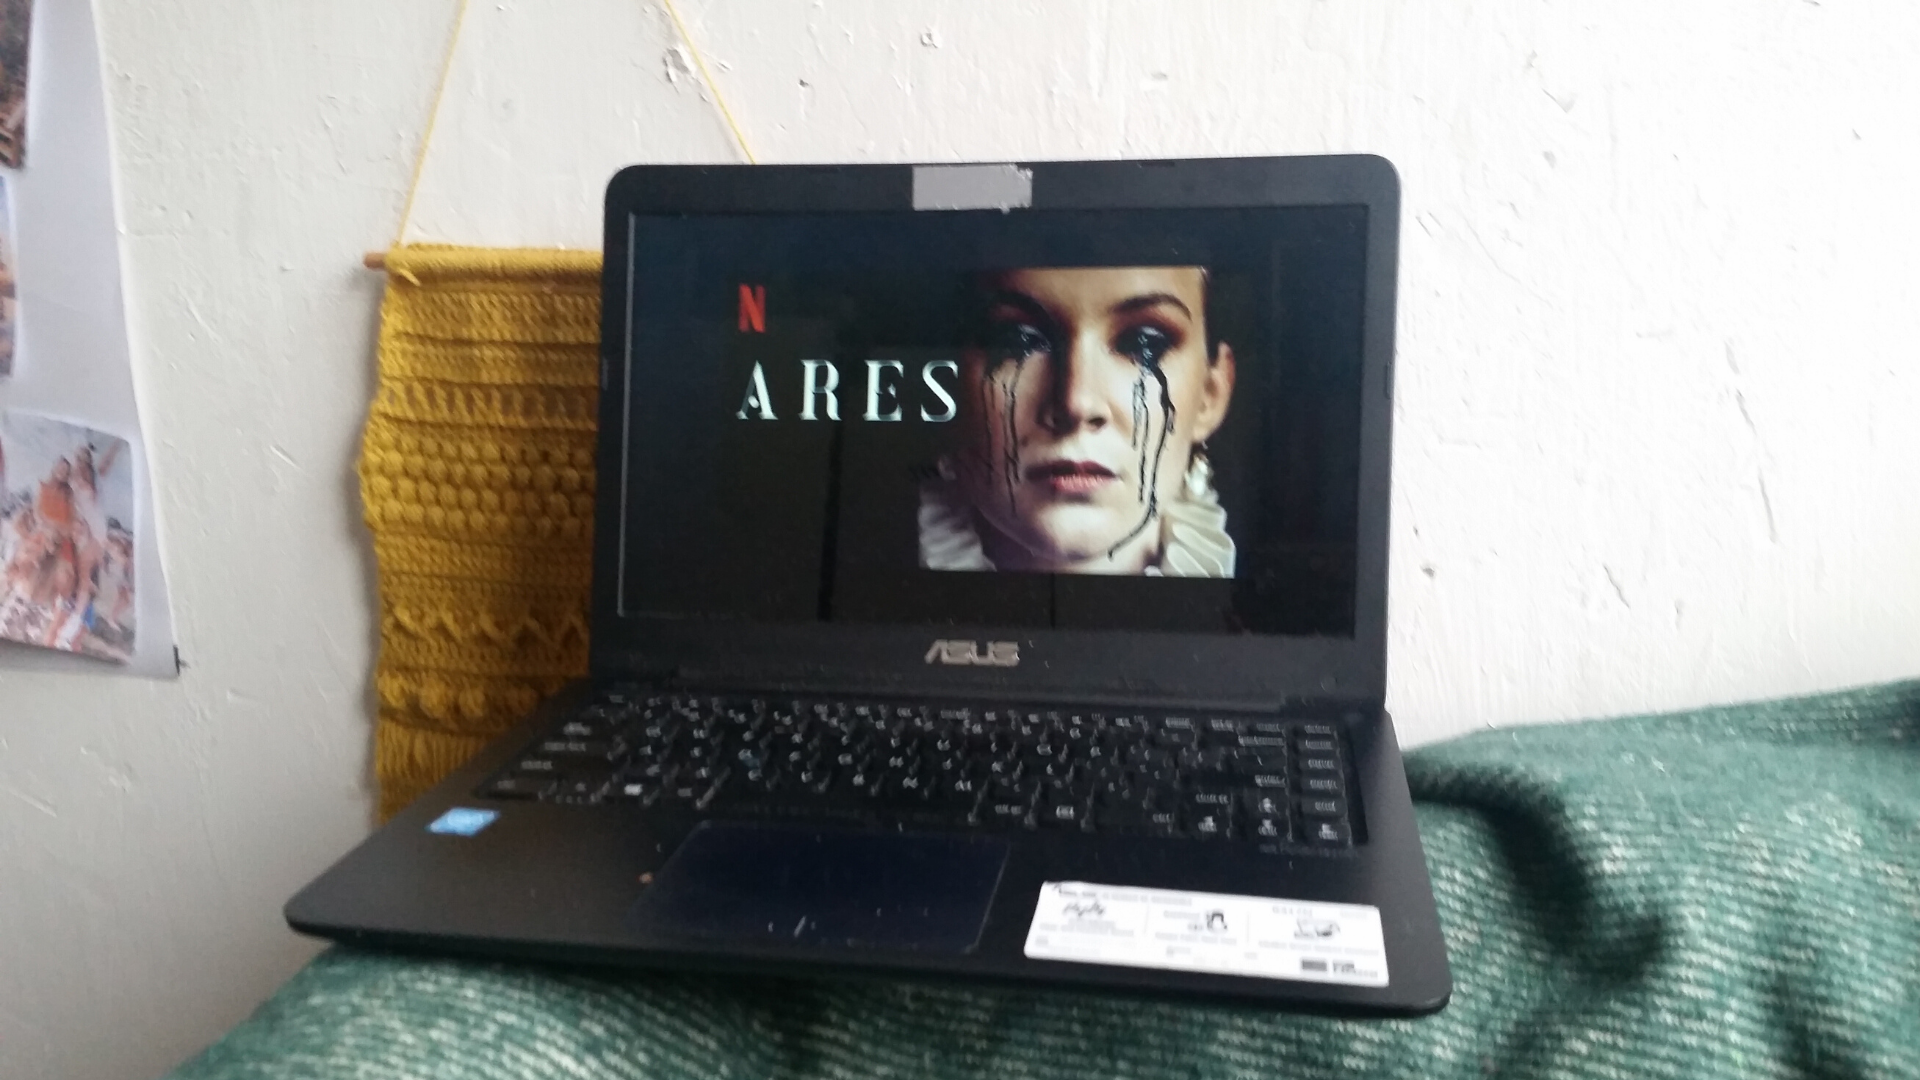 ares season 1 review